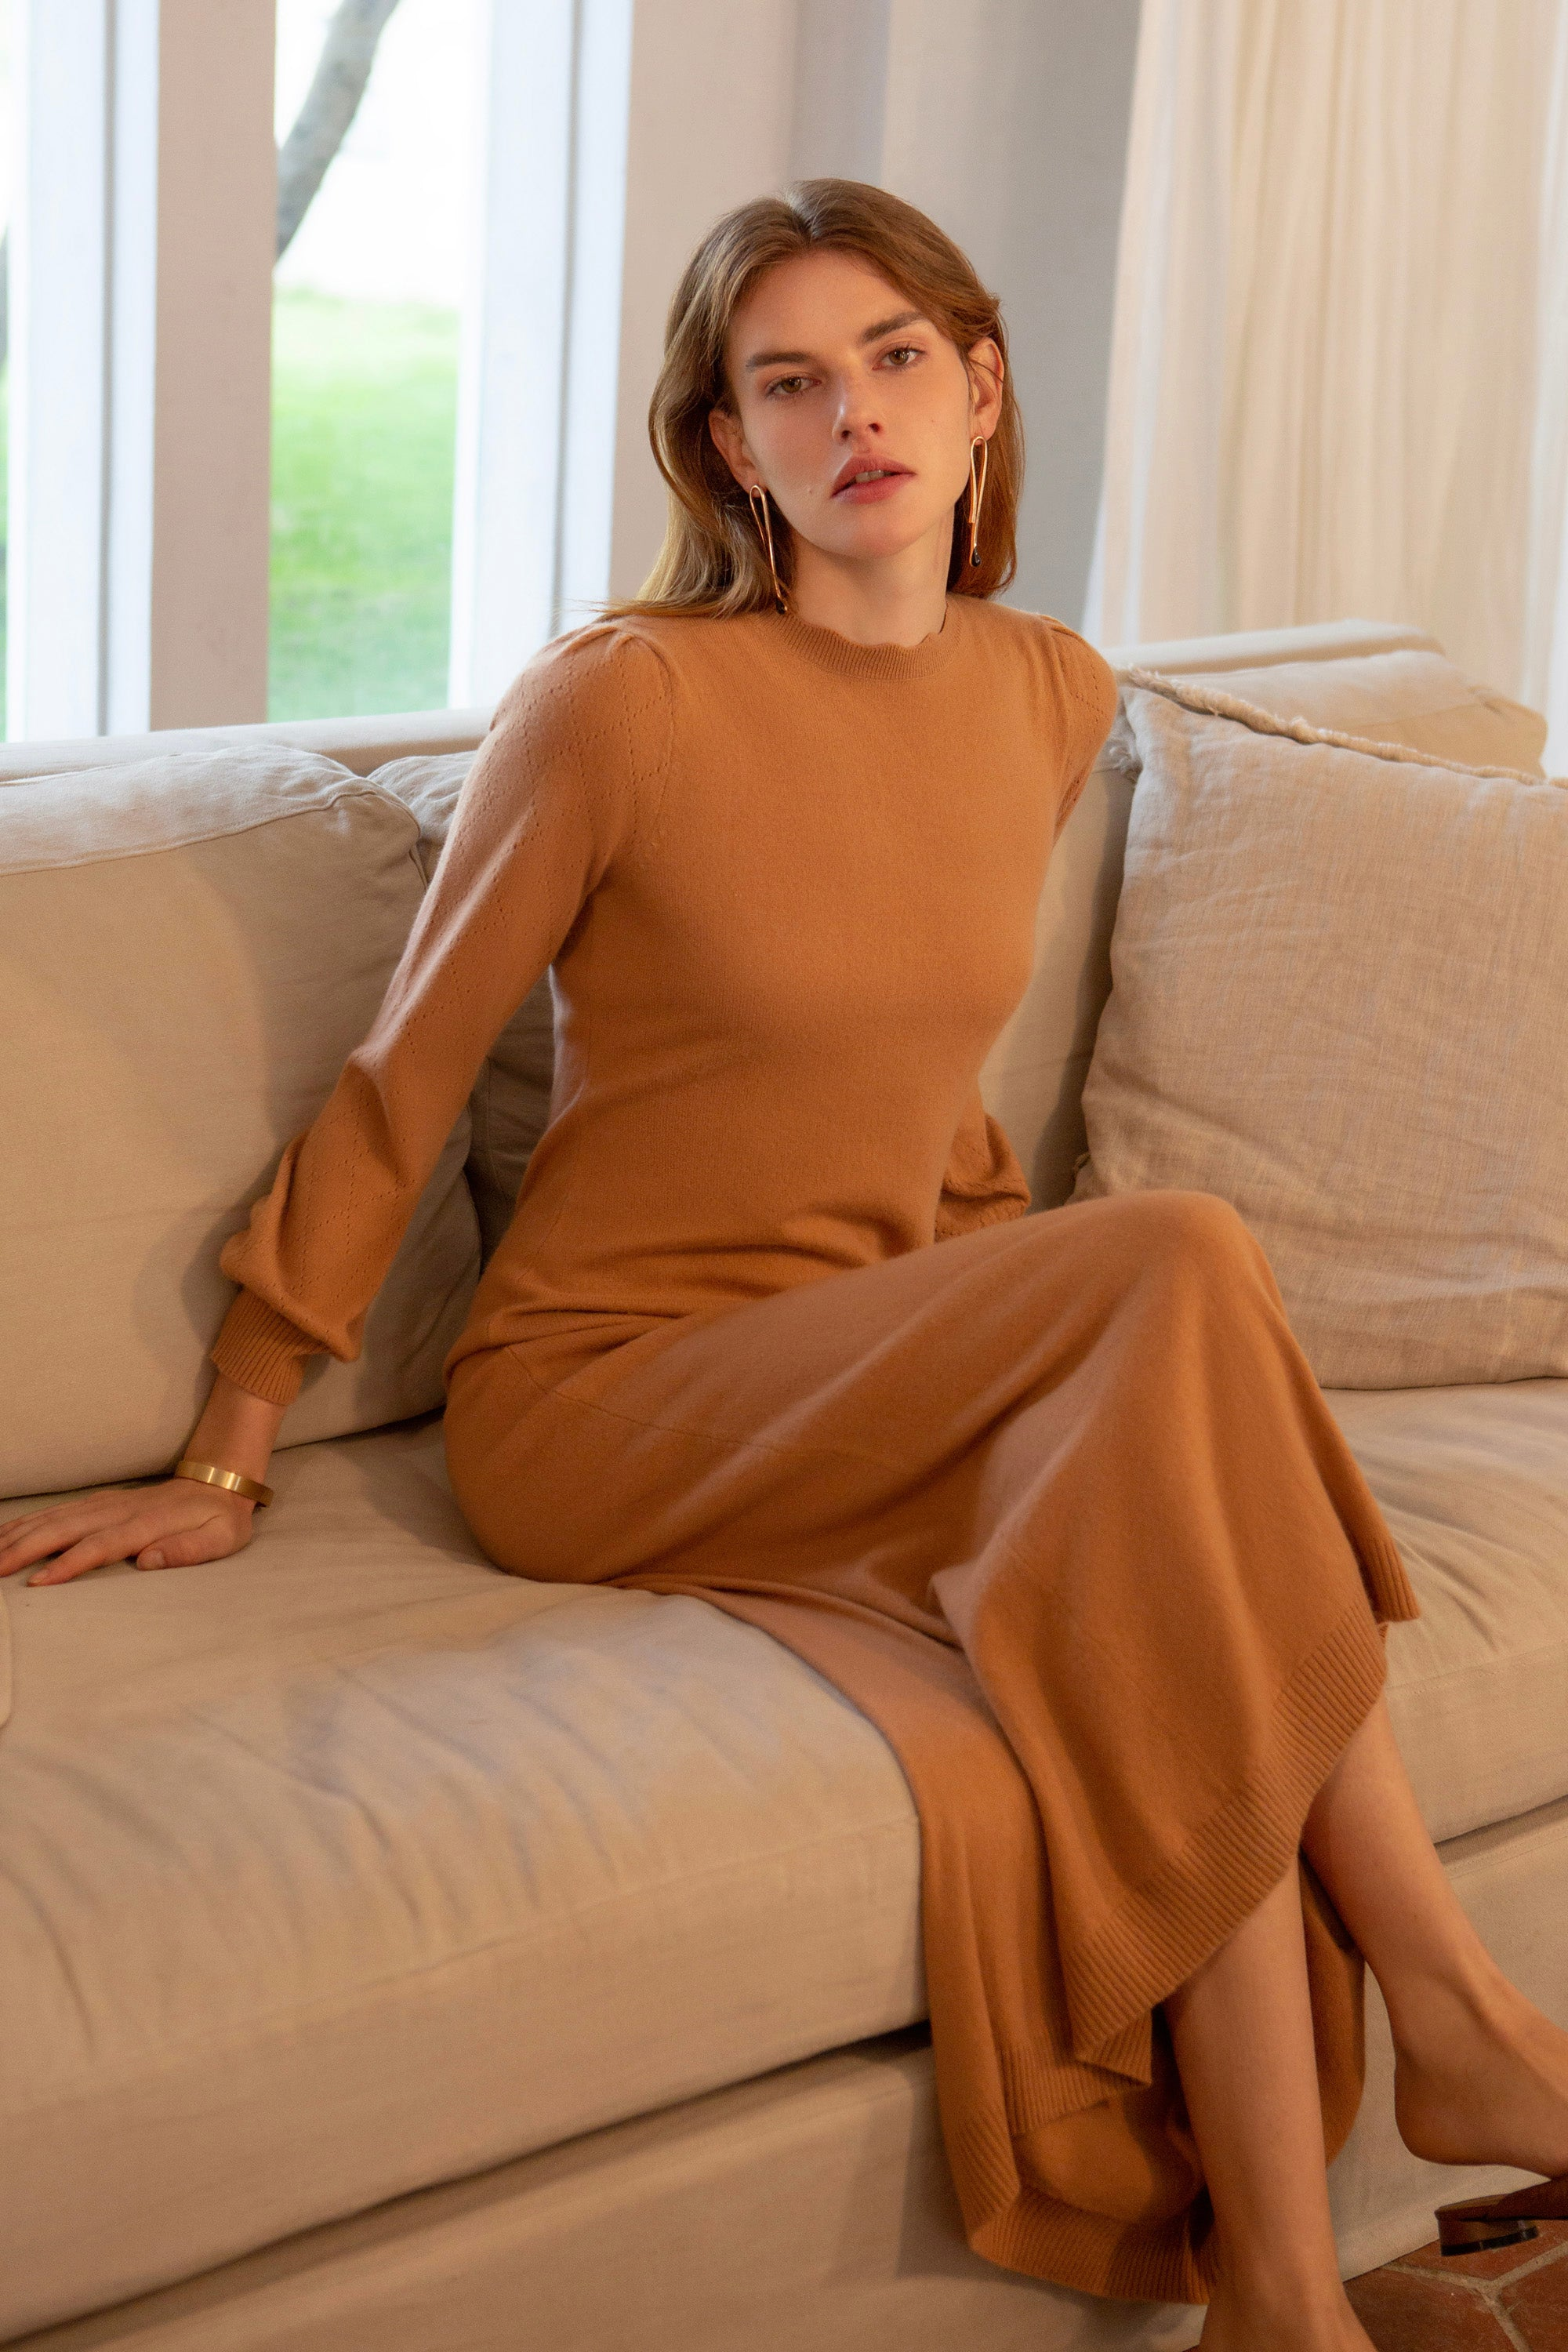 cashmere dress, sweater dress, sweater dress for women,  sweater dress women, scallop neck, scallop neckline, scallop neck dress, scallop neckline dress, cashmere maxi dress, knitwear maxi dress, knit maxi dress, maxi dress, puff sleeve dress, dress with puff sleeve,fall sweater dress